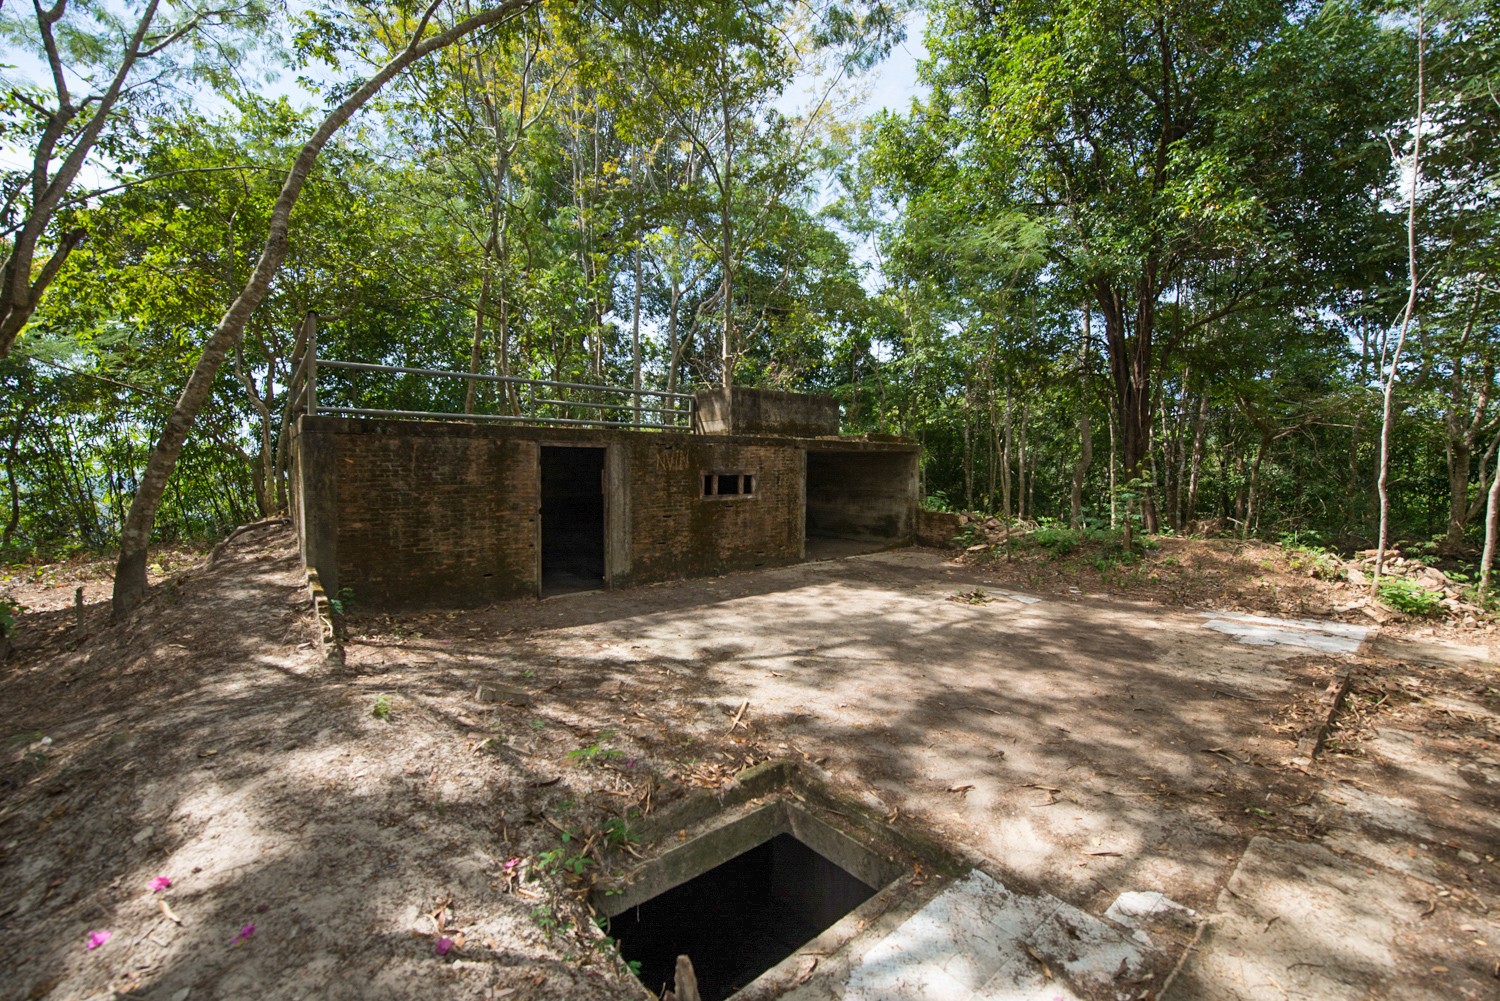 cambodia-photo-tours-pol-pot-house